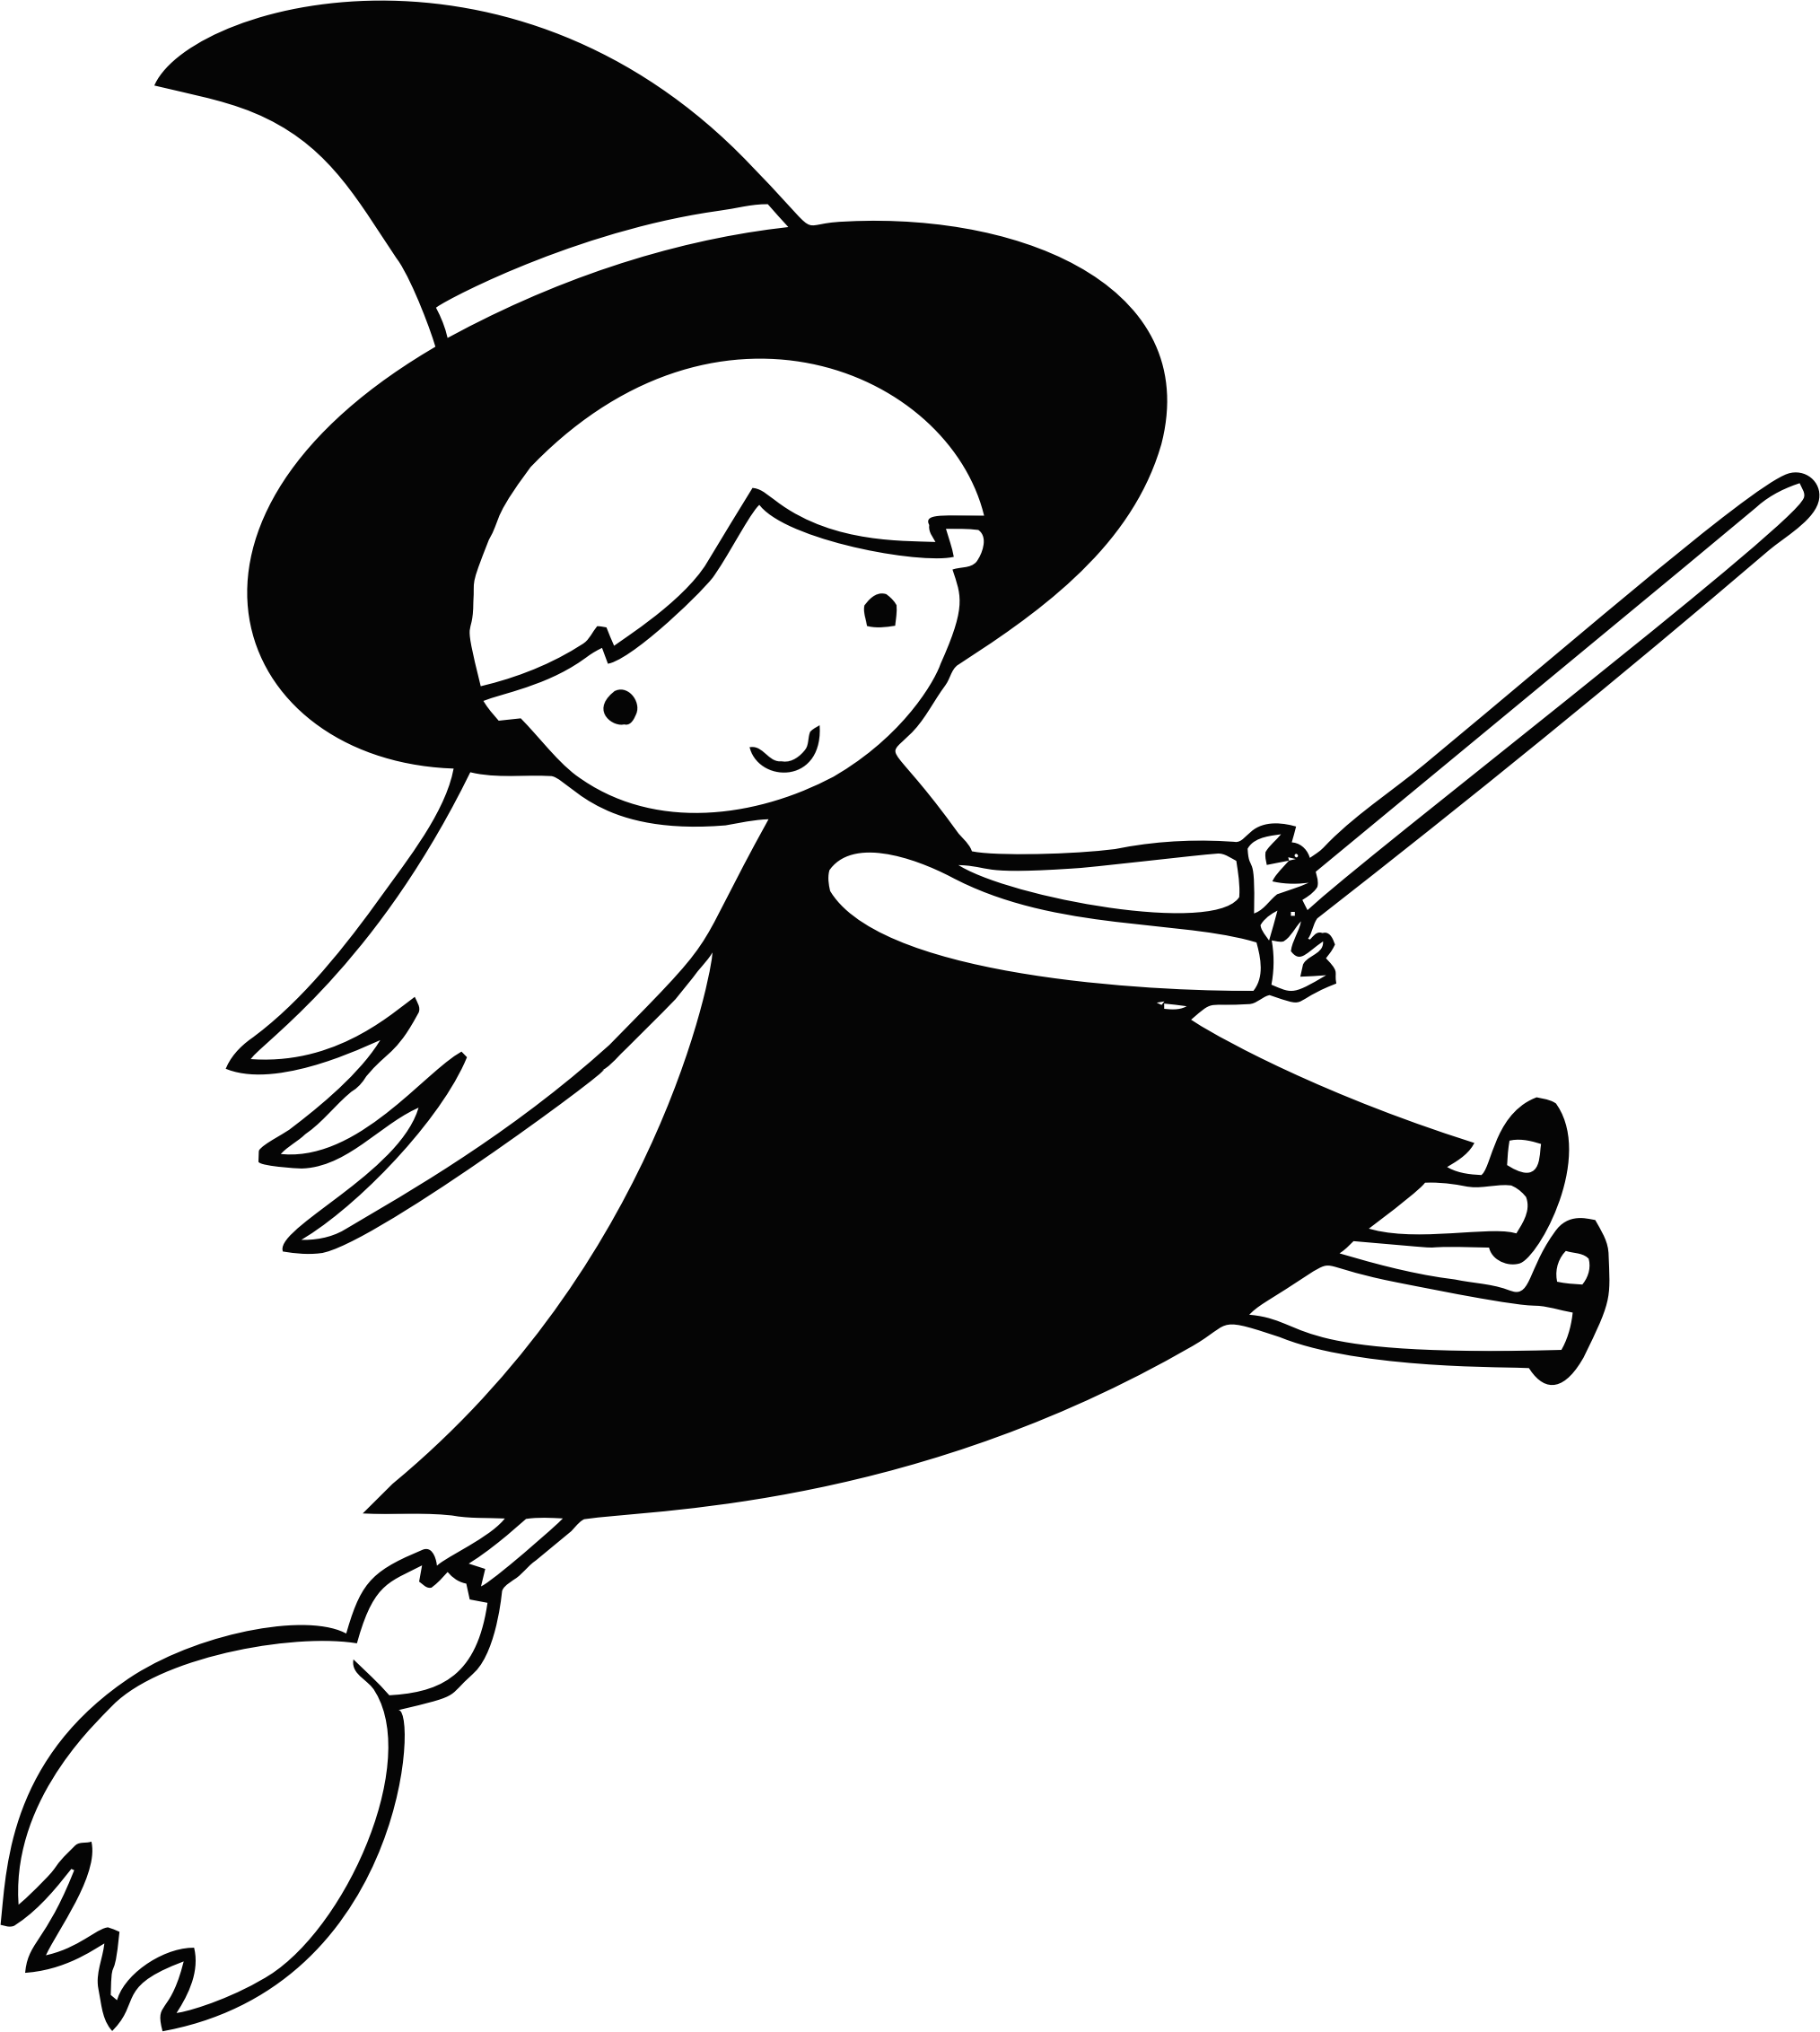 Witch clipart flying witch. Line art big image